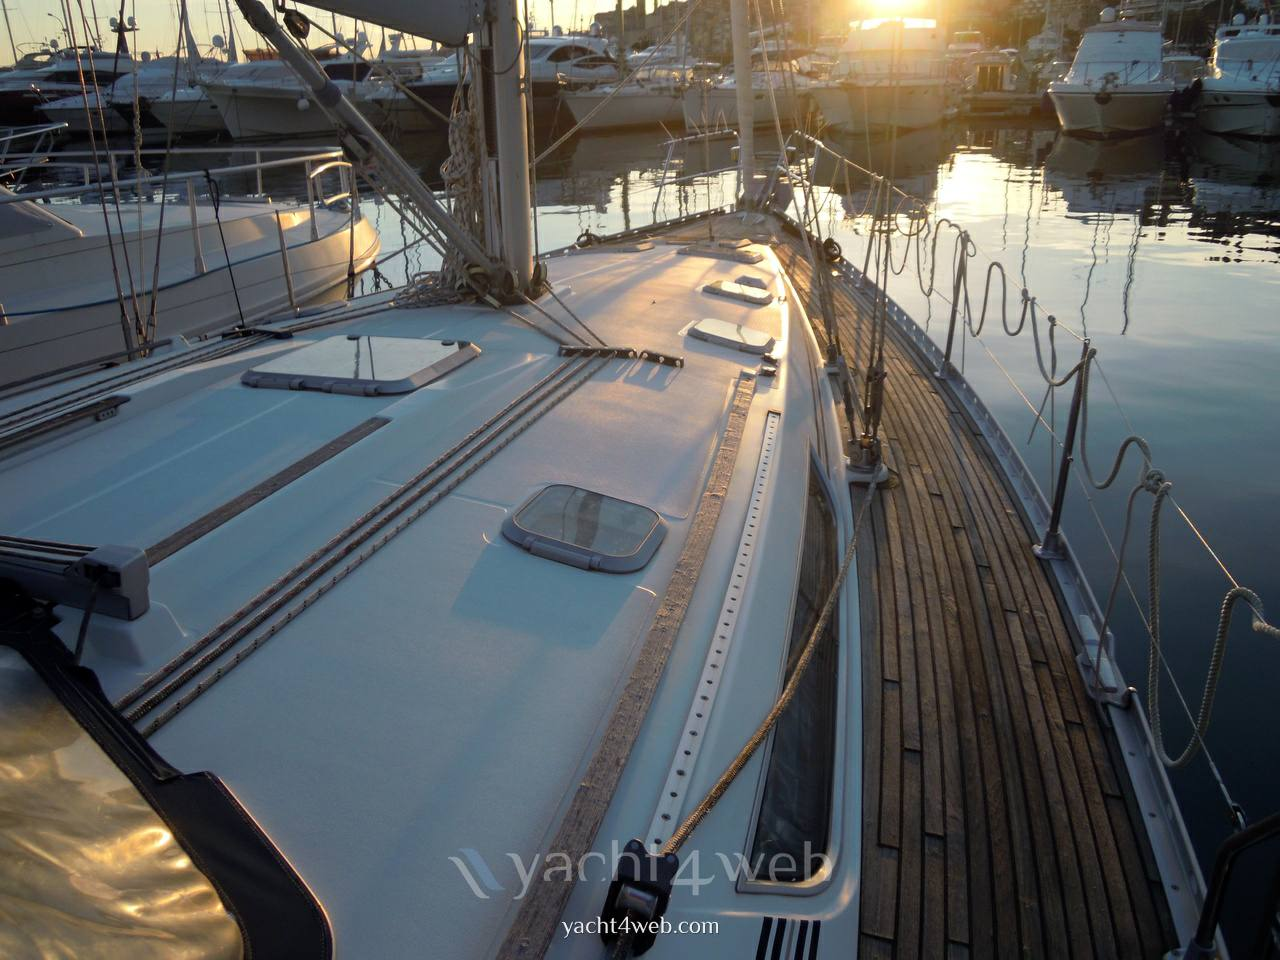 Jeanneau Sun odyssey 45.1 Sailing boat used for sale